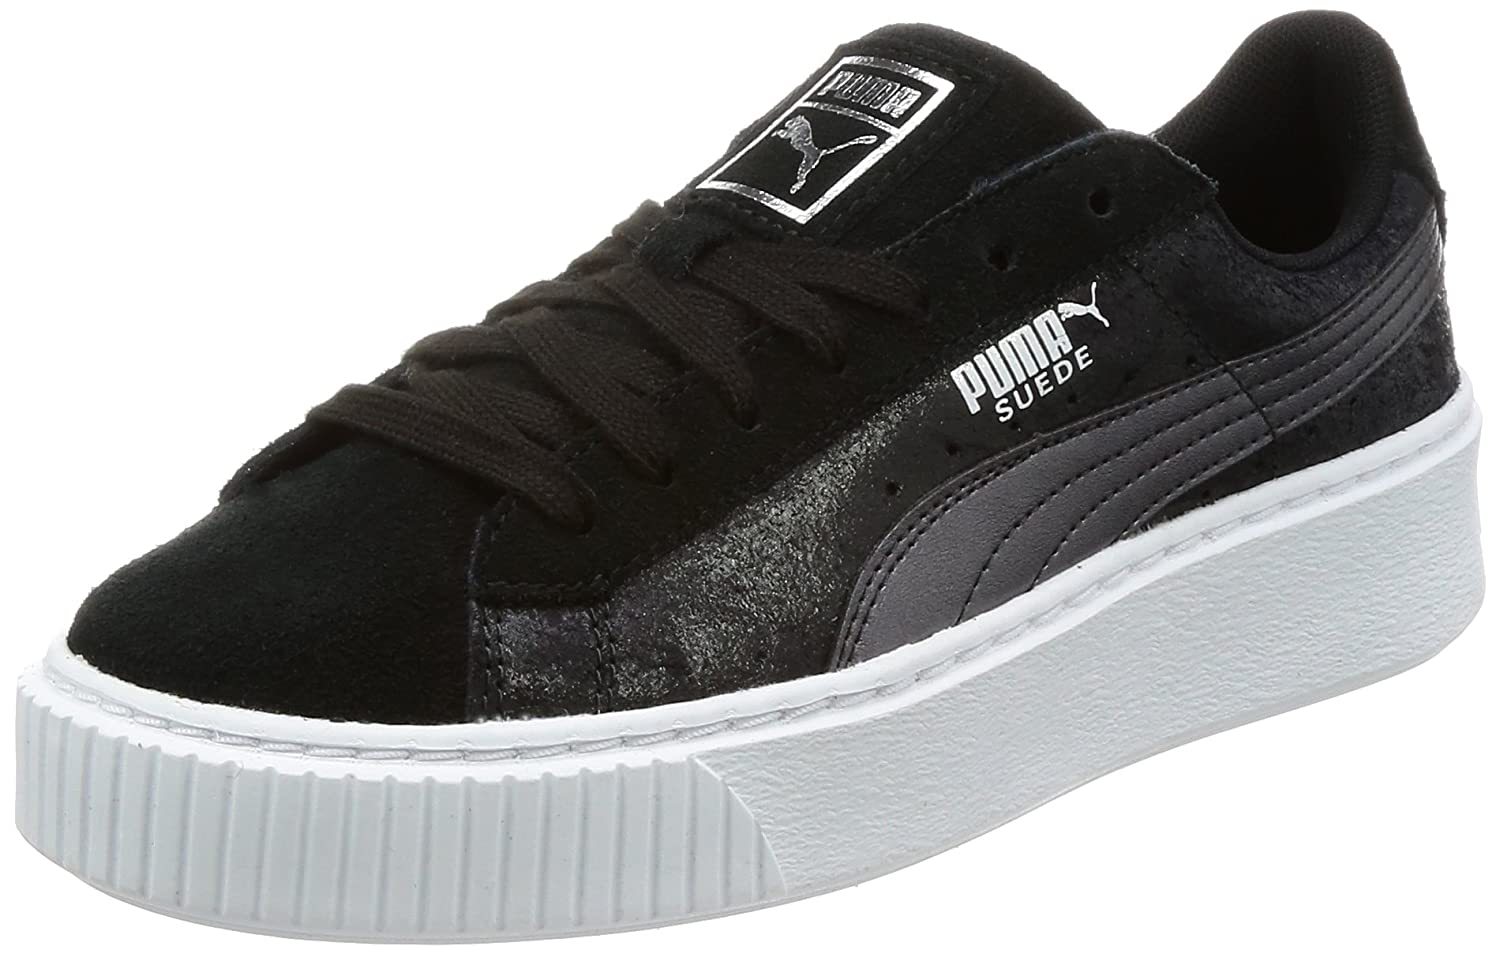 new concept 64c5b bba5b Puma Suede Heart Safari, Basket Mode Femme  Puma  Amazon.fr  Chaussures et  Sacs